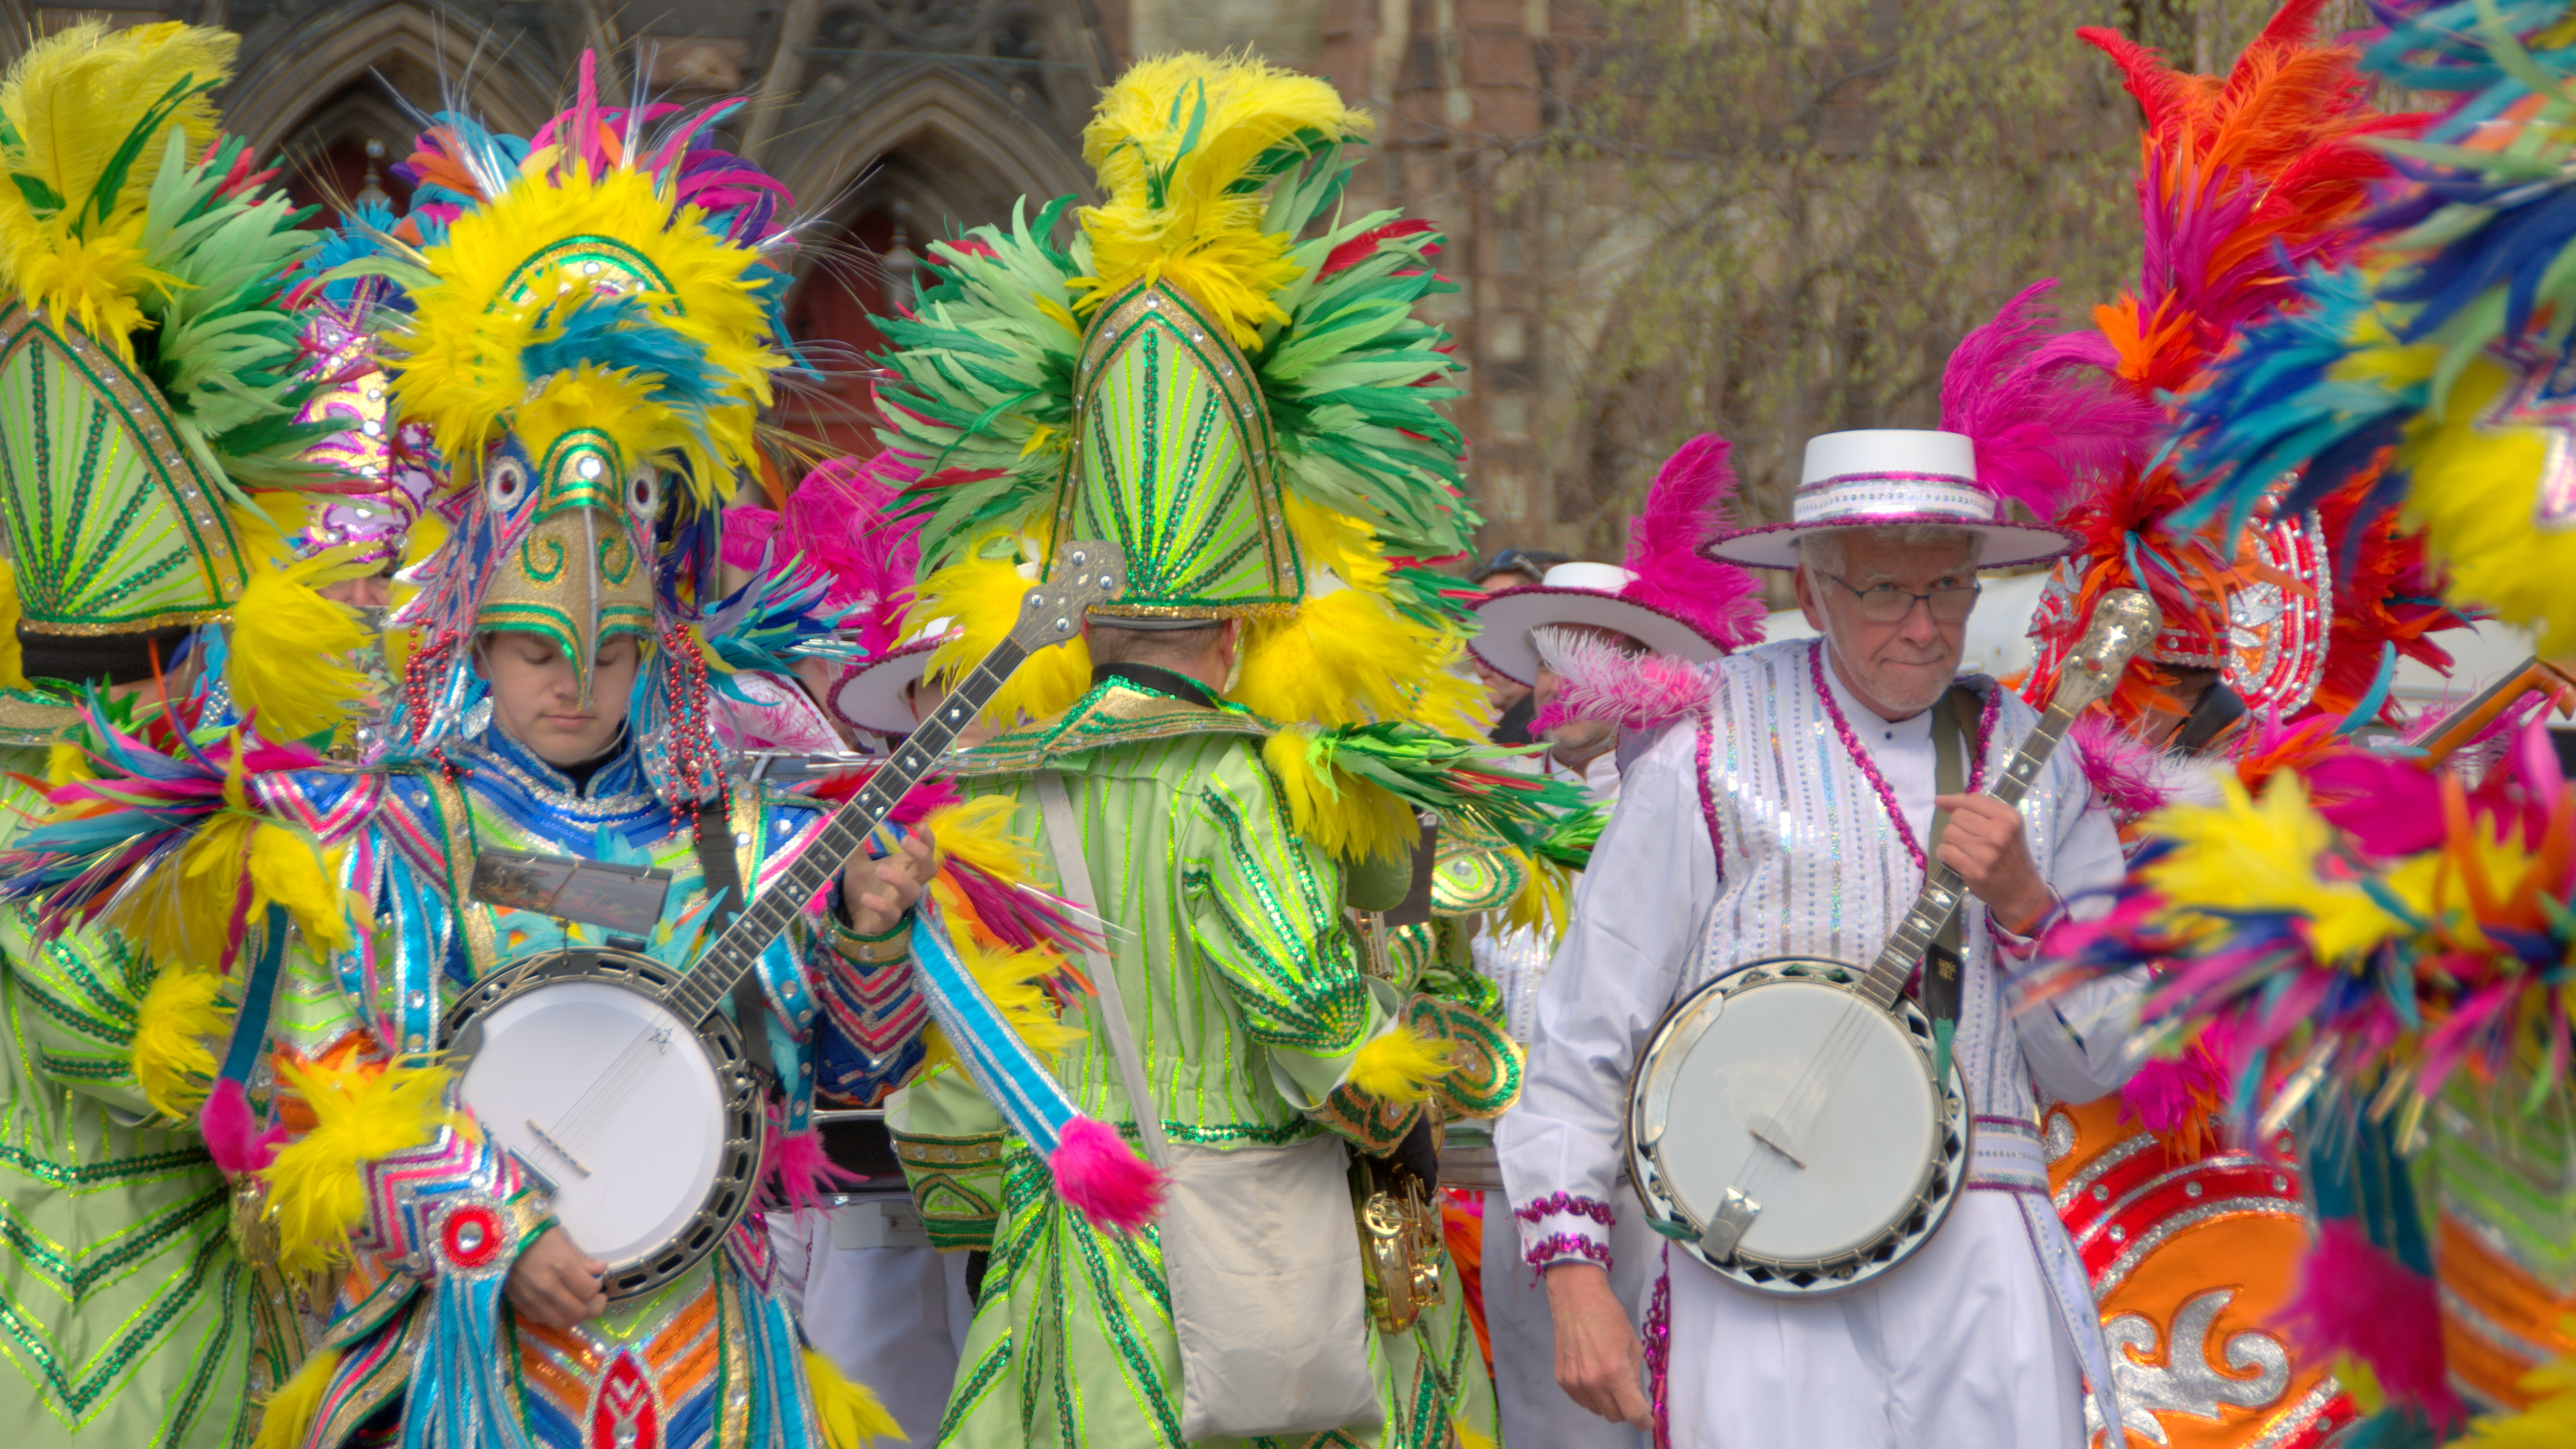 Banjos and beautiful colors at yesterday's St. Patrick's Day Parade in Baltimore. (Chris Grant)